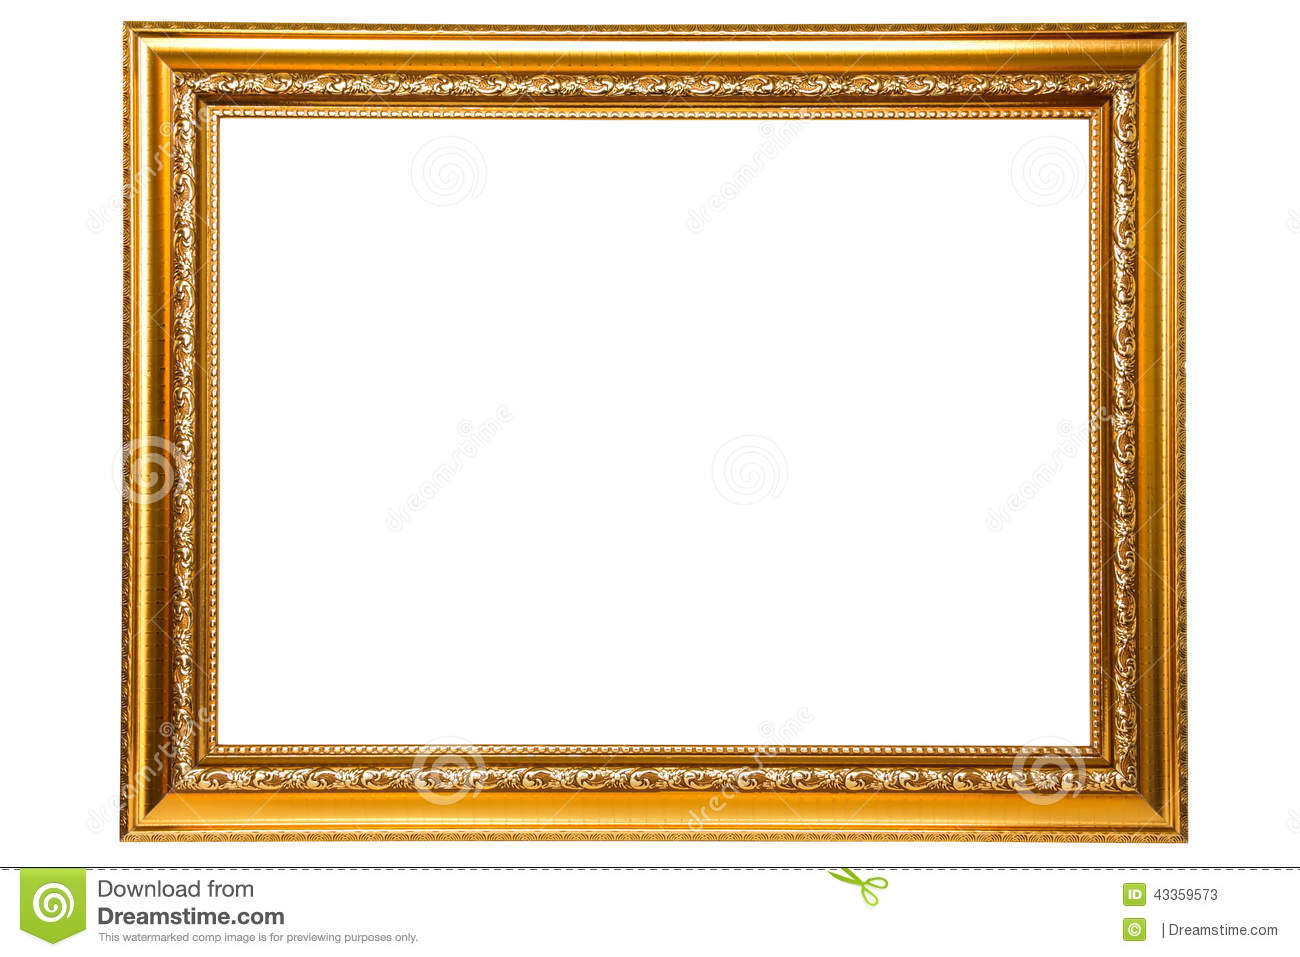 Golden frame stock image. Image of texture, gold, exhibition - 43359573